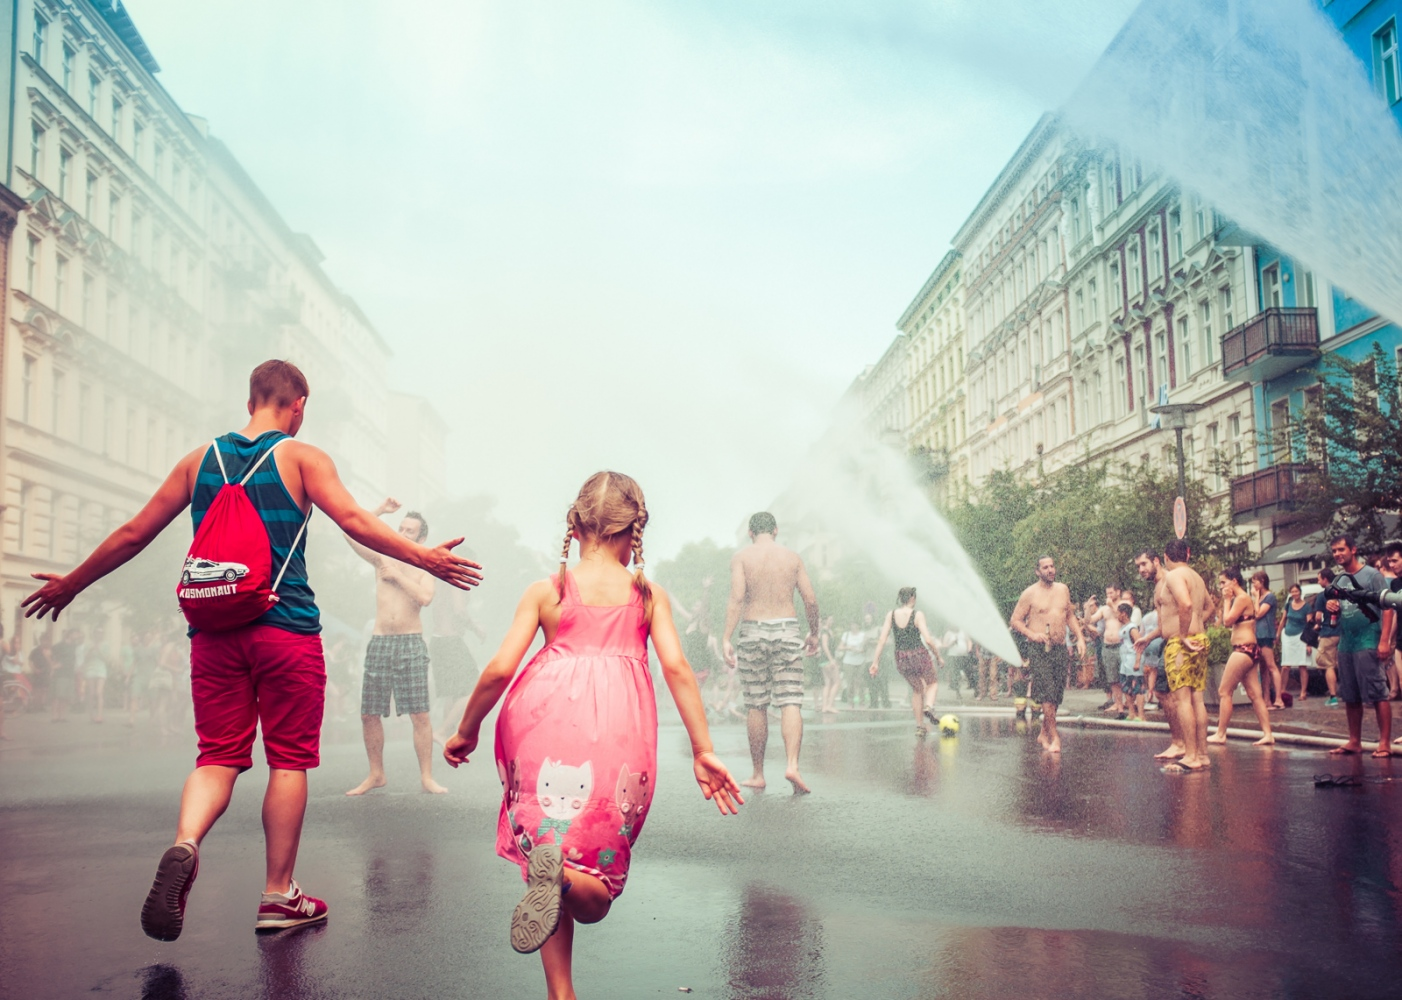 Berlin, GERMANY, July 6, 2015: Fire fighters start a water party in Oderberger Strasse in Prenzlauer Berg district during a hot day.